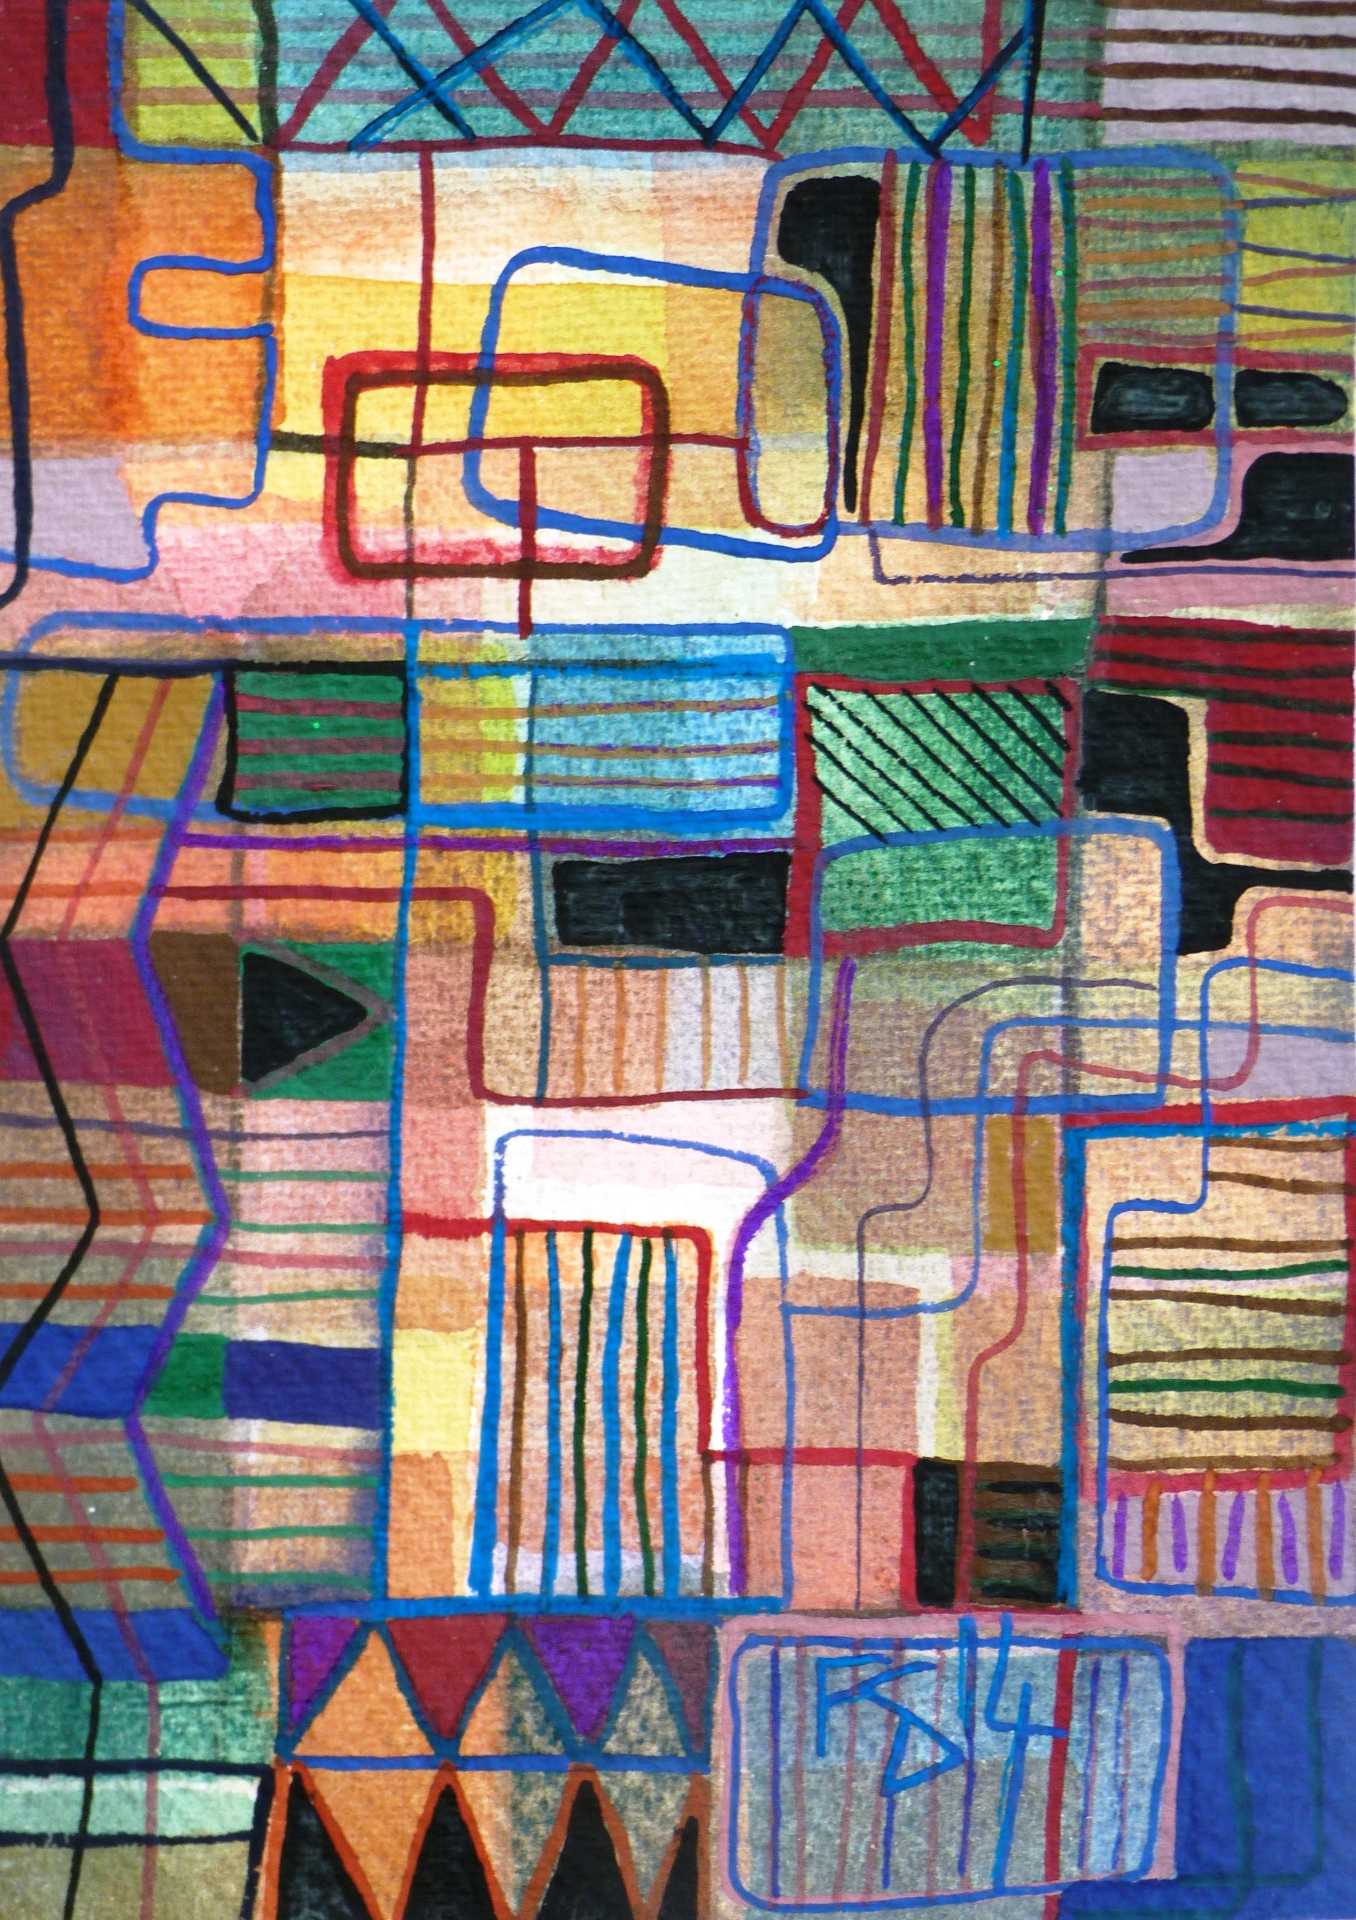 AZTEC CARPET. Watercolour and Gouache on Watercolour Paper.